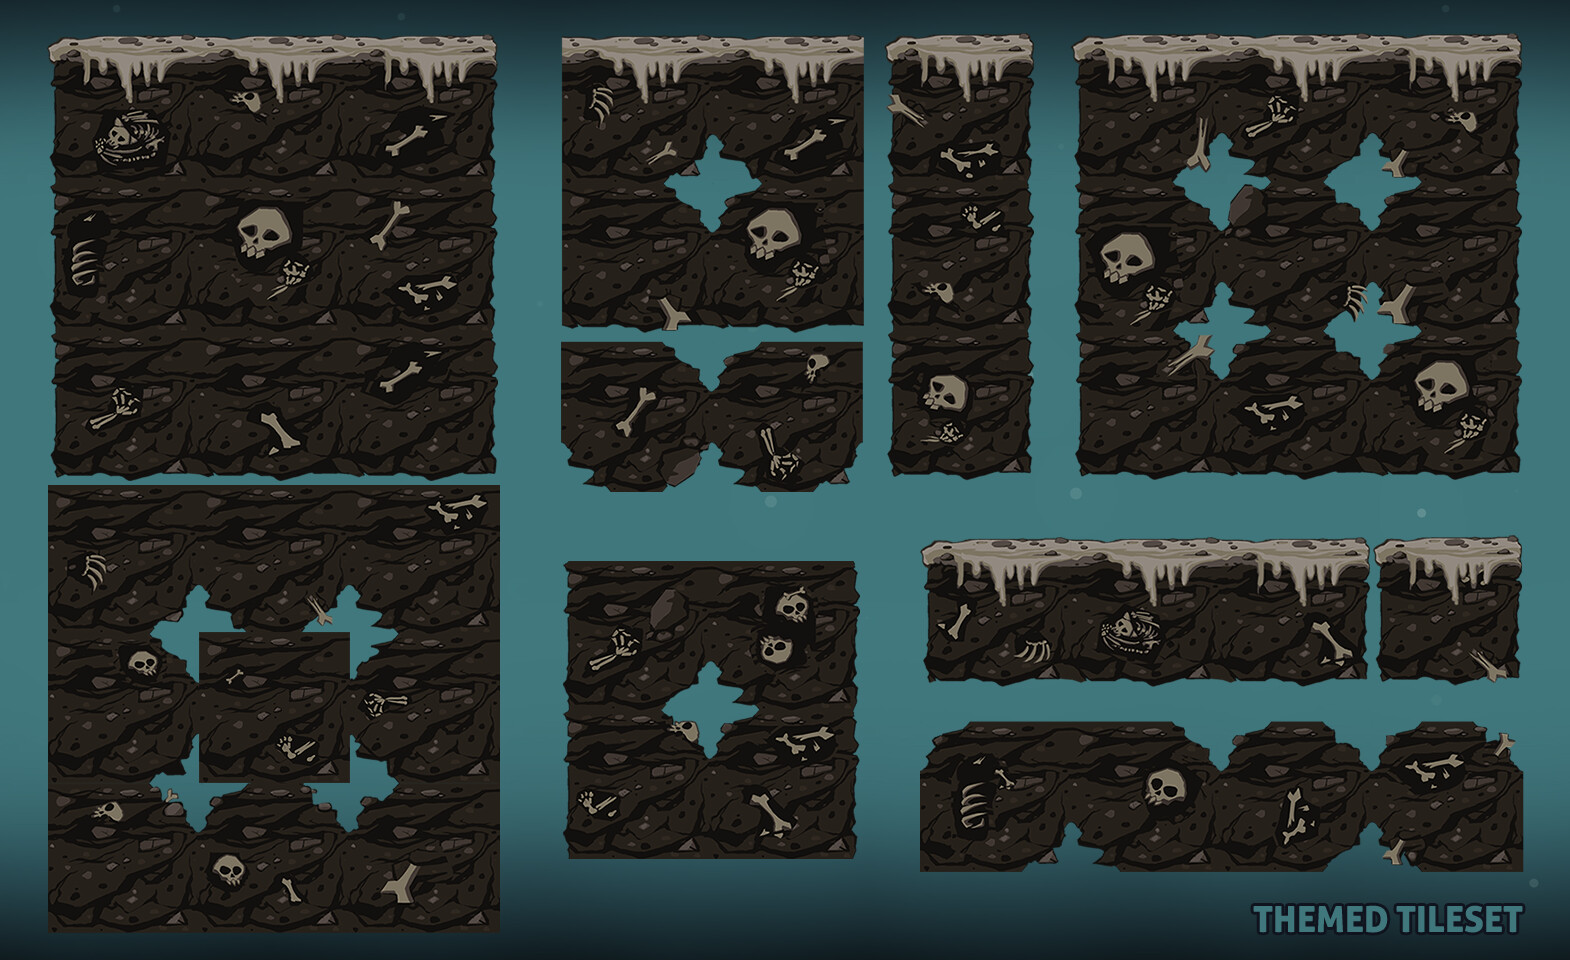 Moon tribe tiles